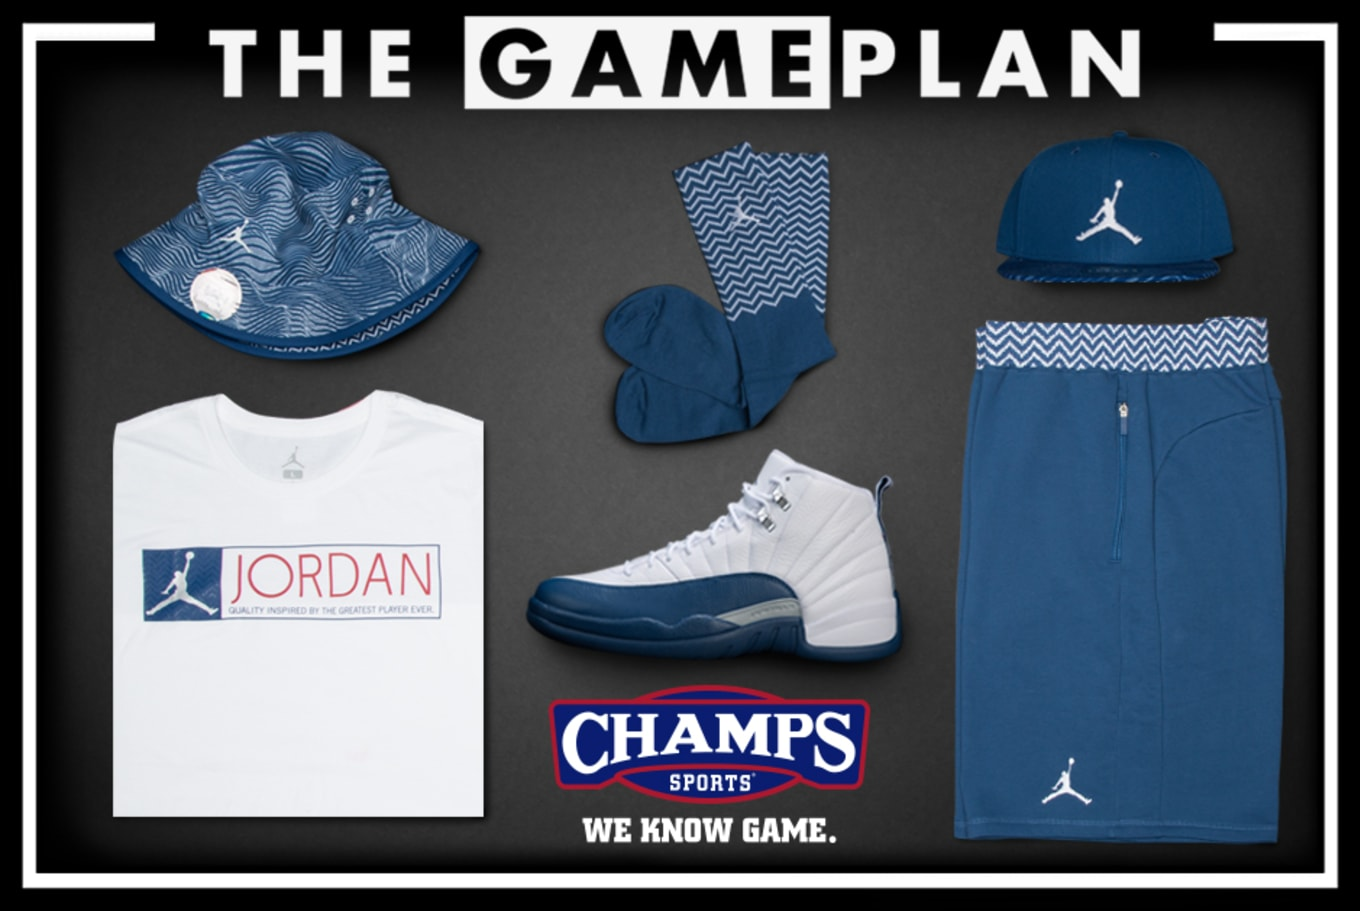 The Game Plan by Champs Sports Presents the Jordan French Blue Collection 65a43019a